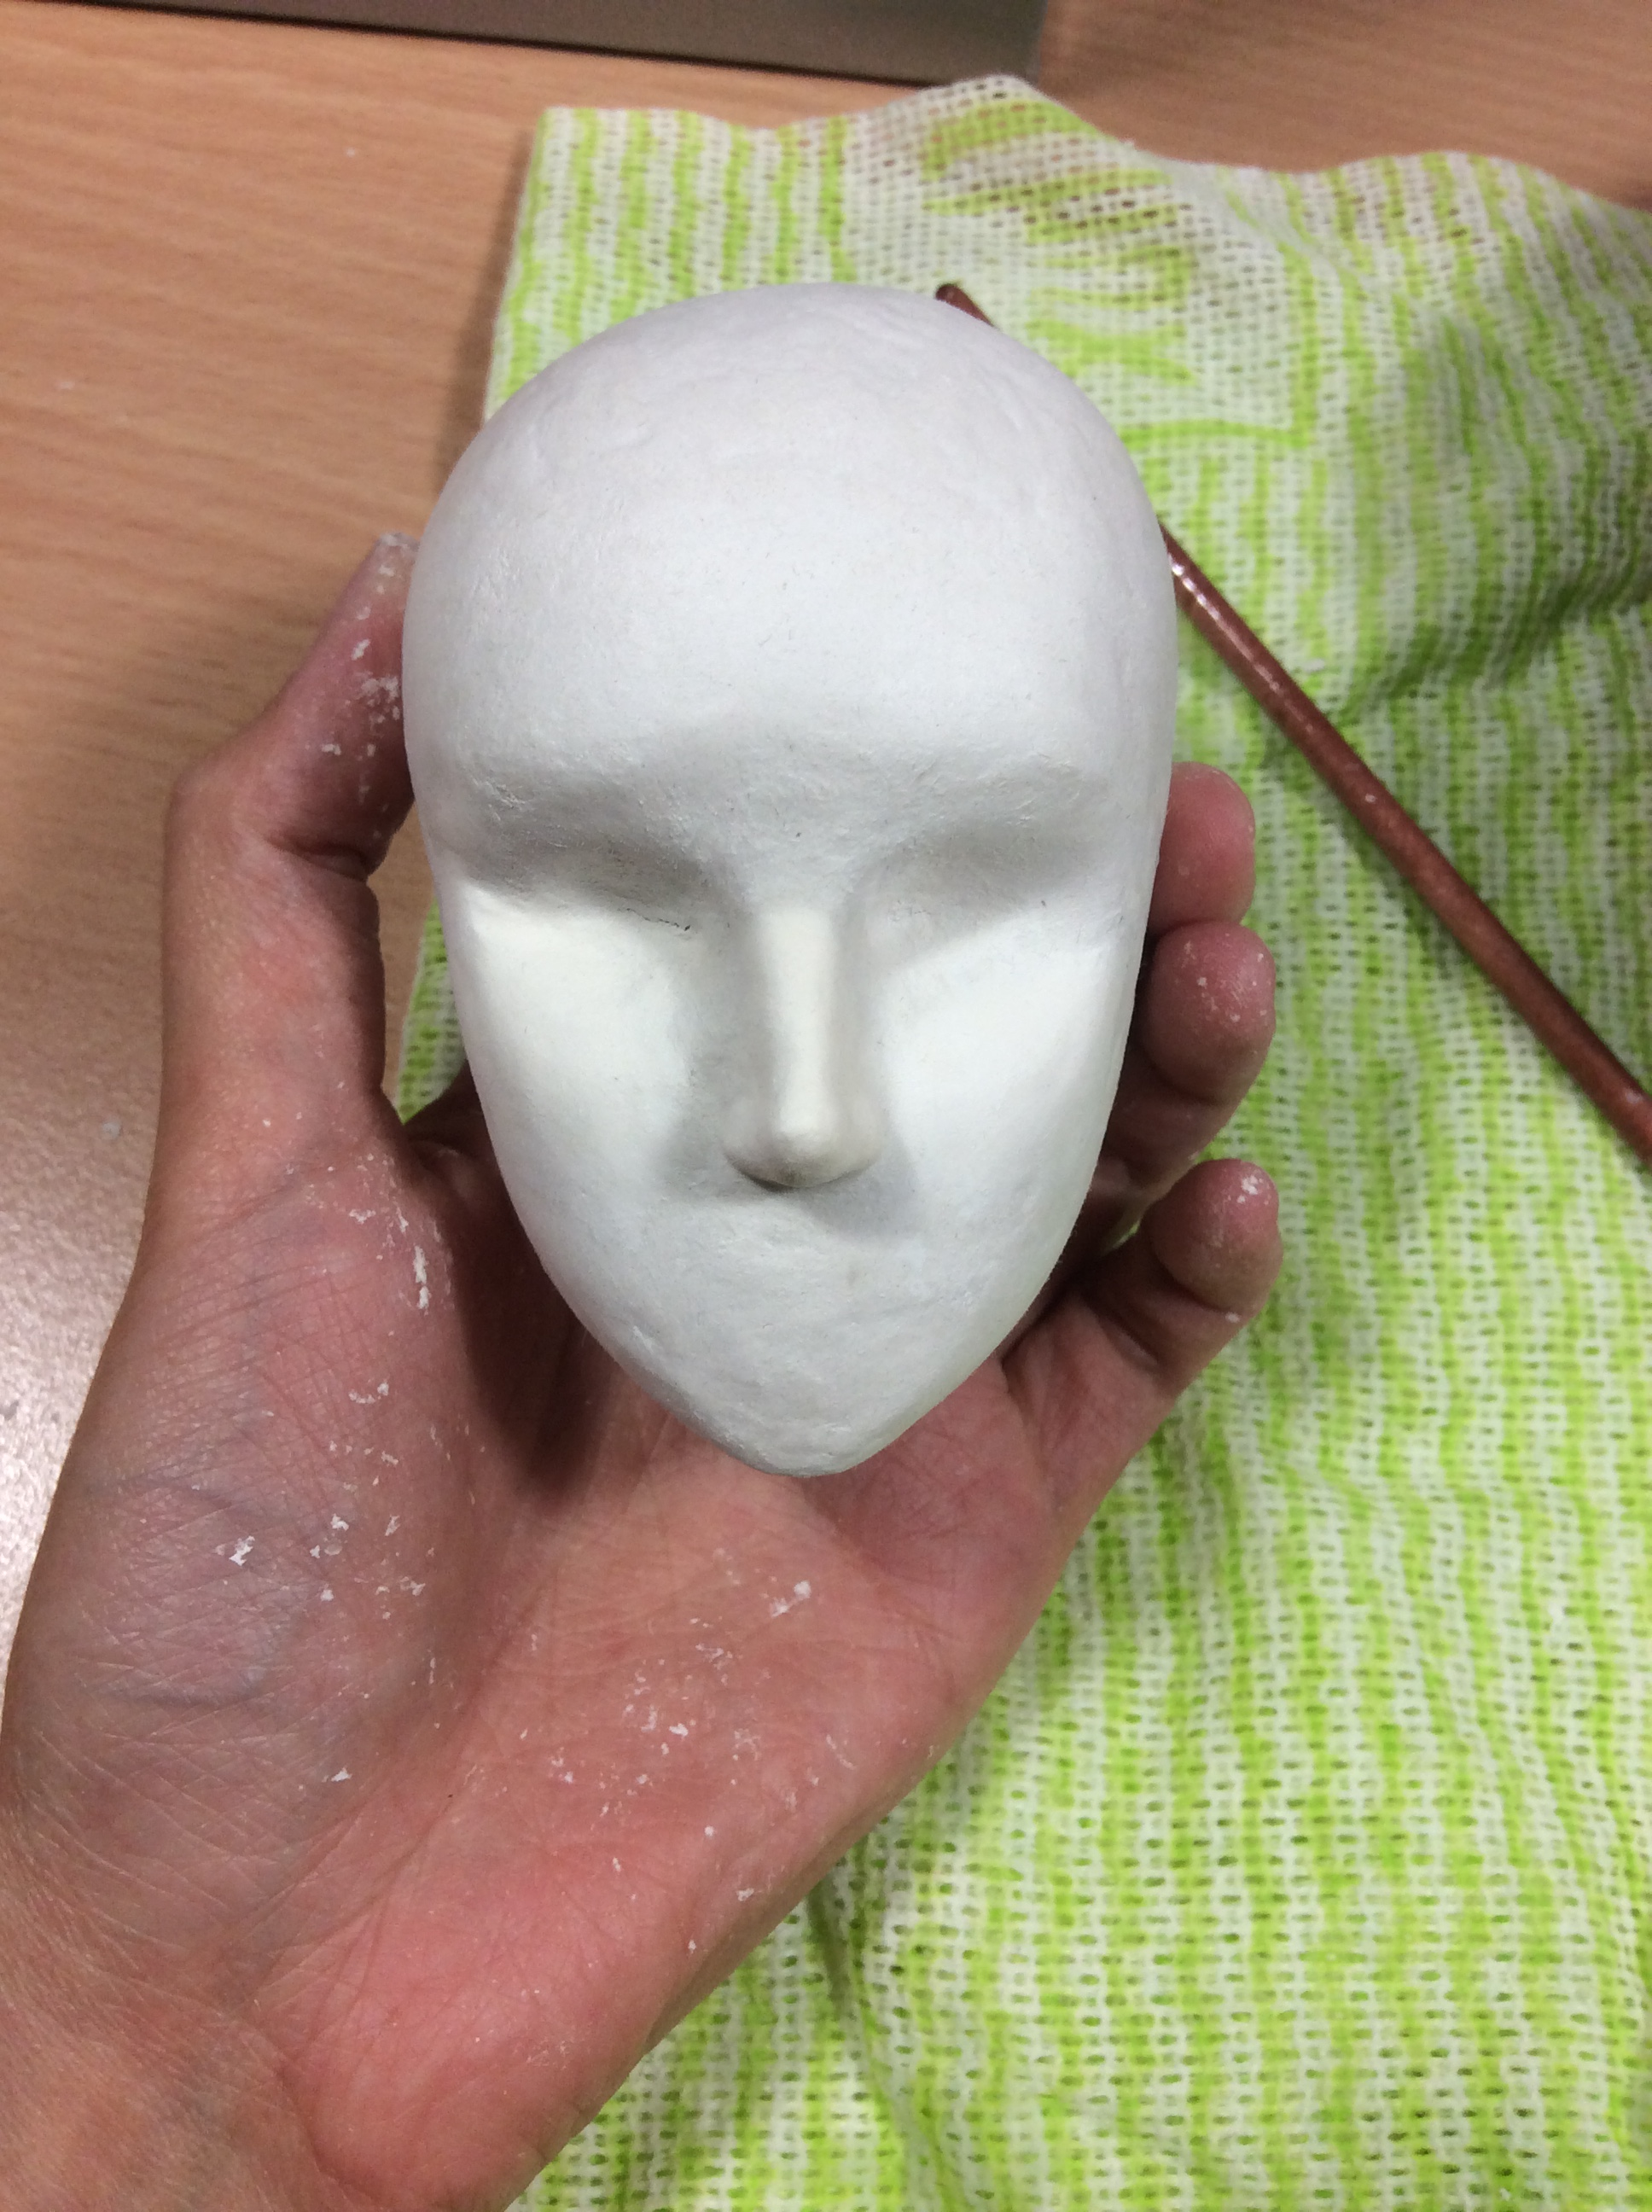 jemse---my-first-doll-head-making-progress-diary-part-2_31602478743_o